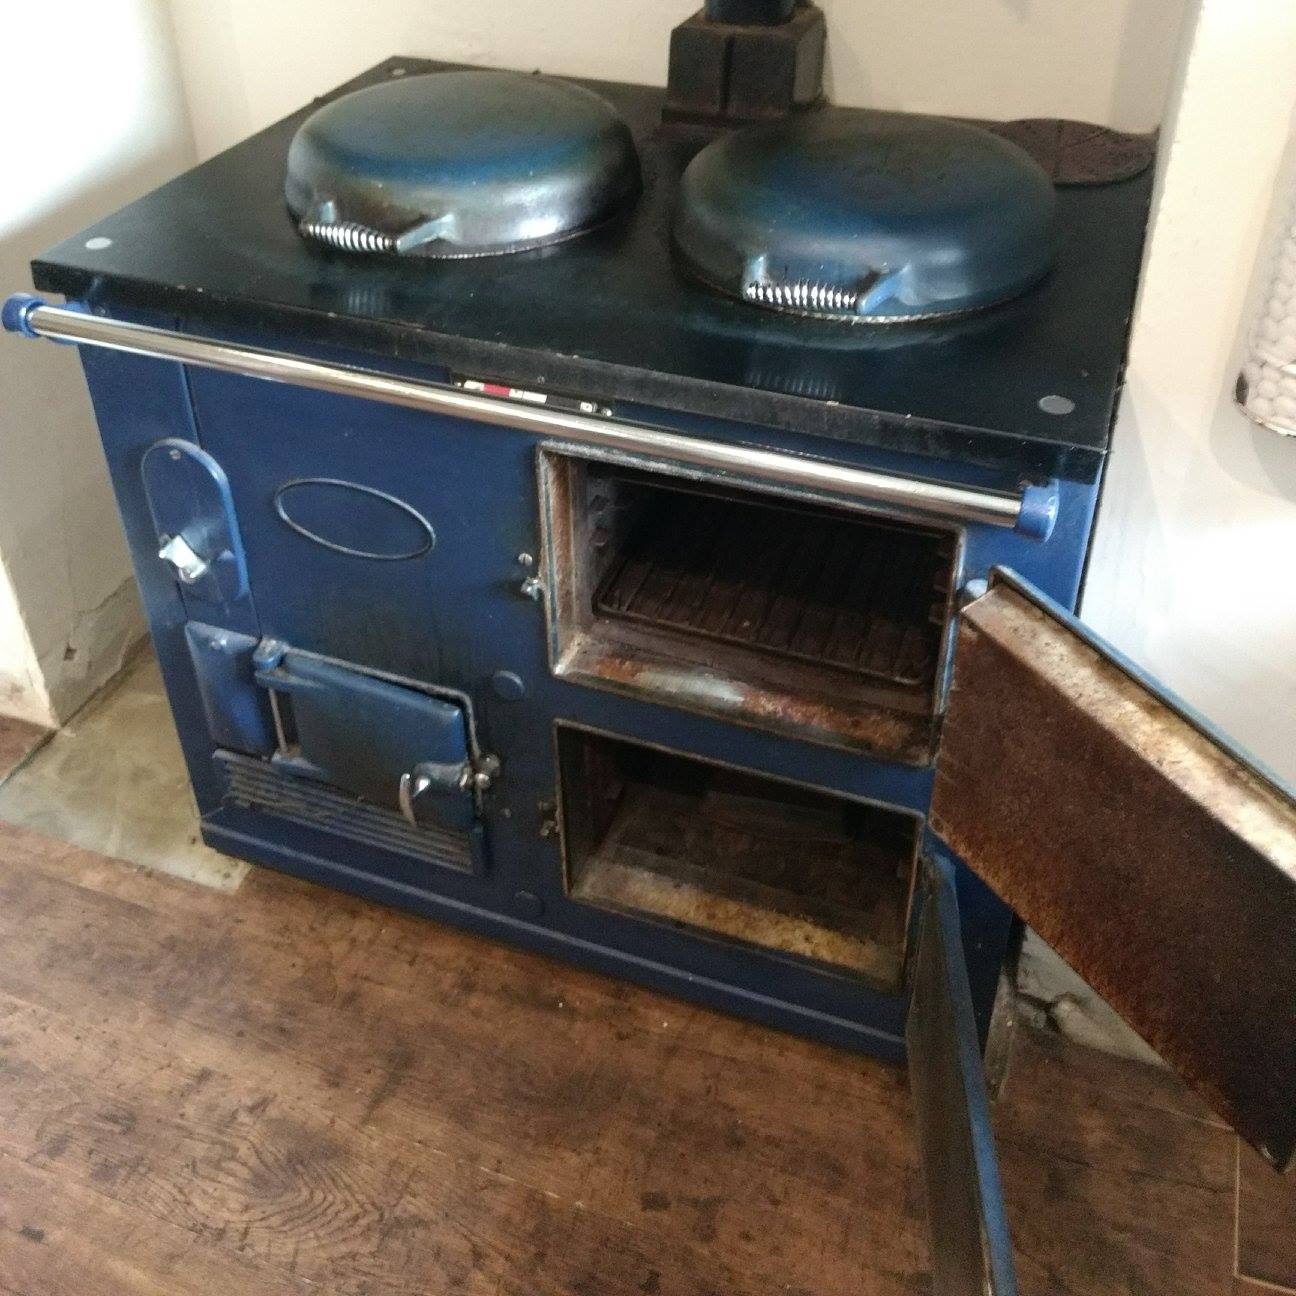 Oxford blue 'Standard' Aga range cooker